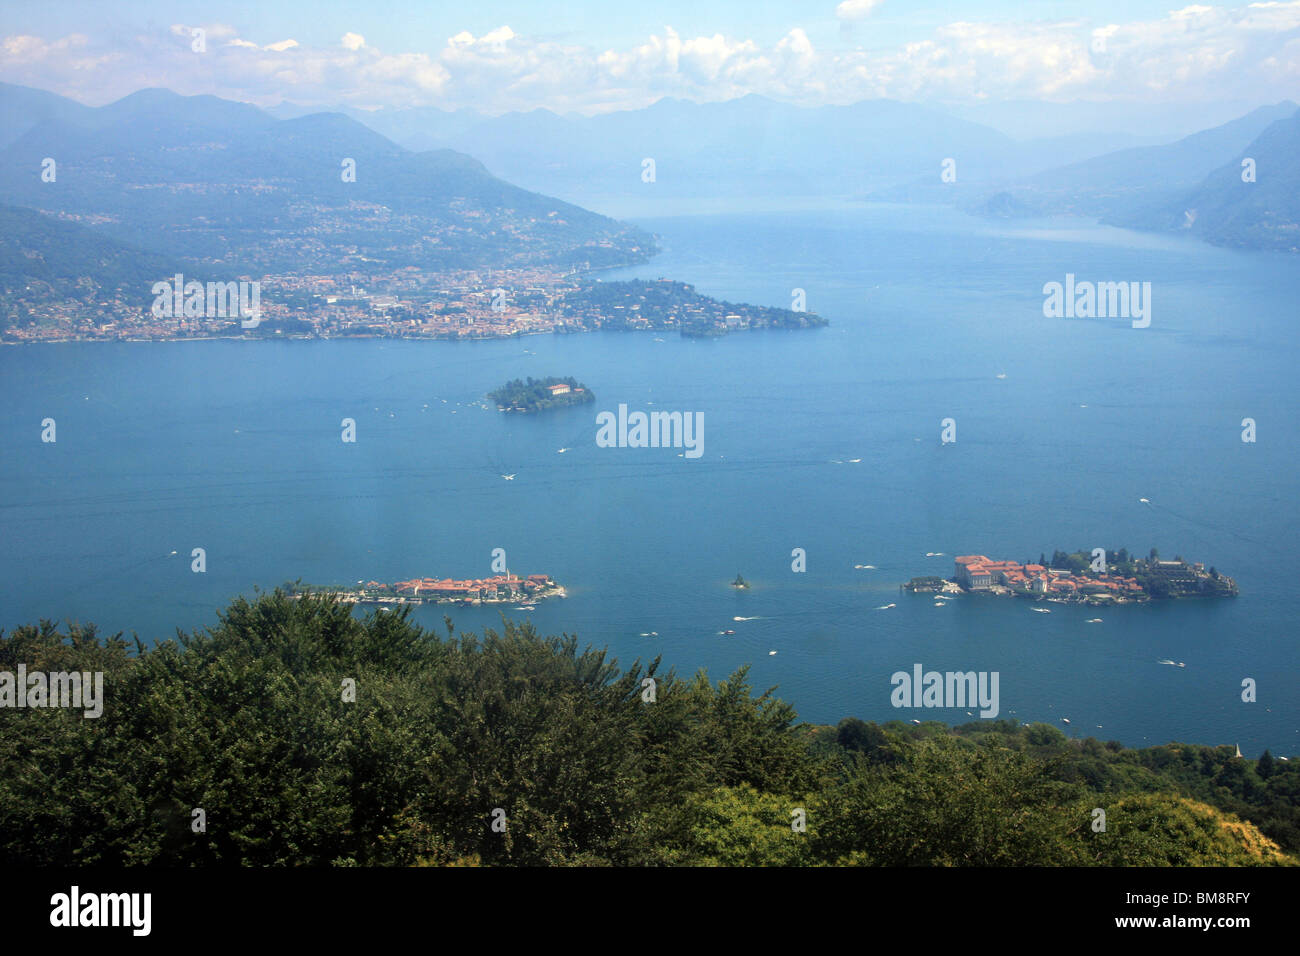 Italy, Lake Maggiore, View from Streza, - Stock Image